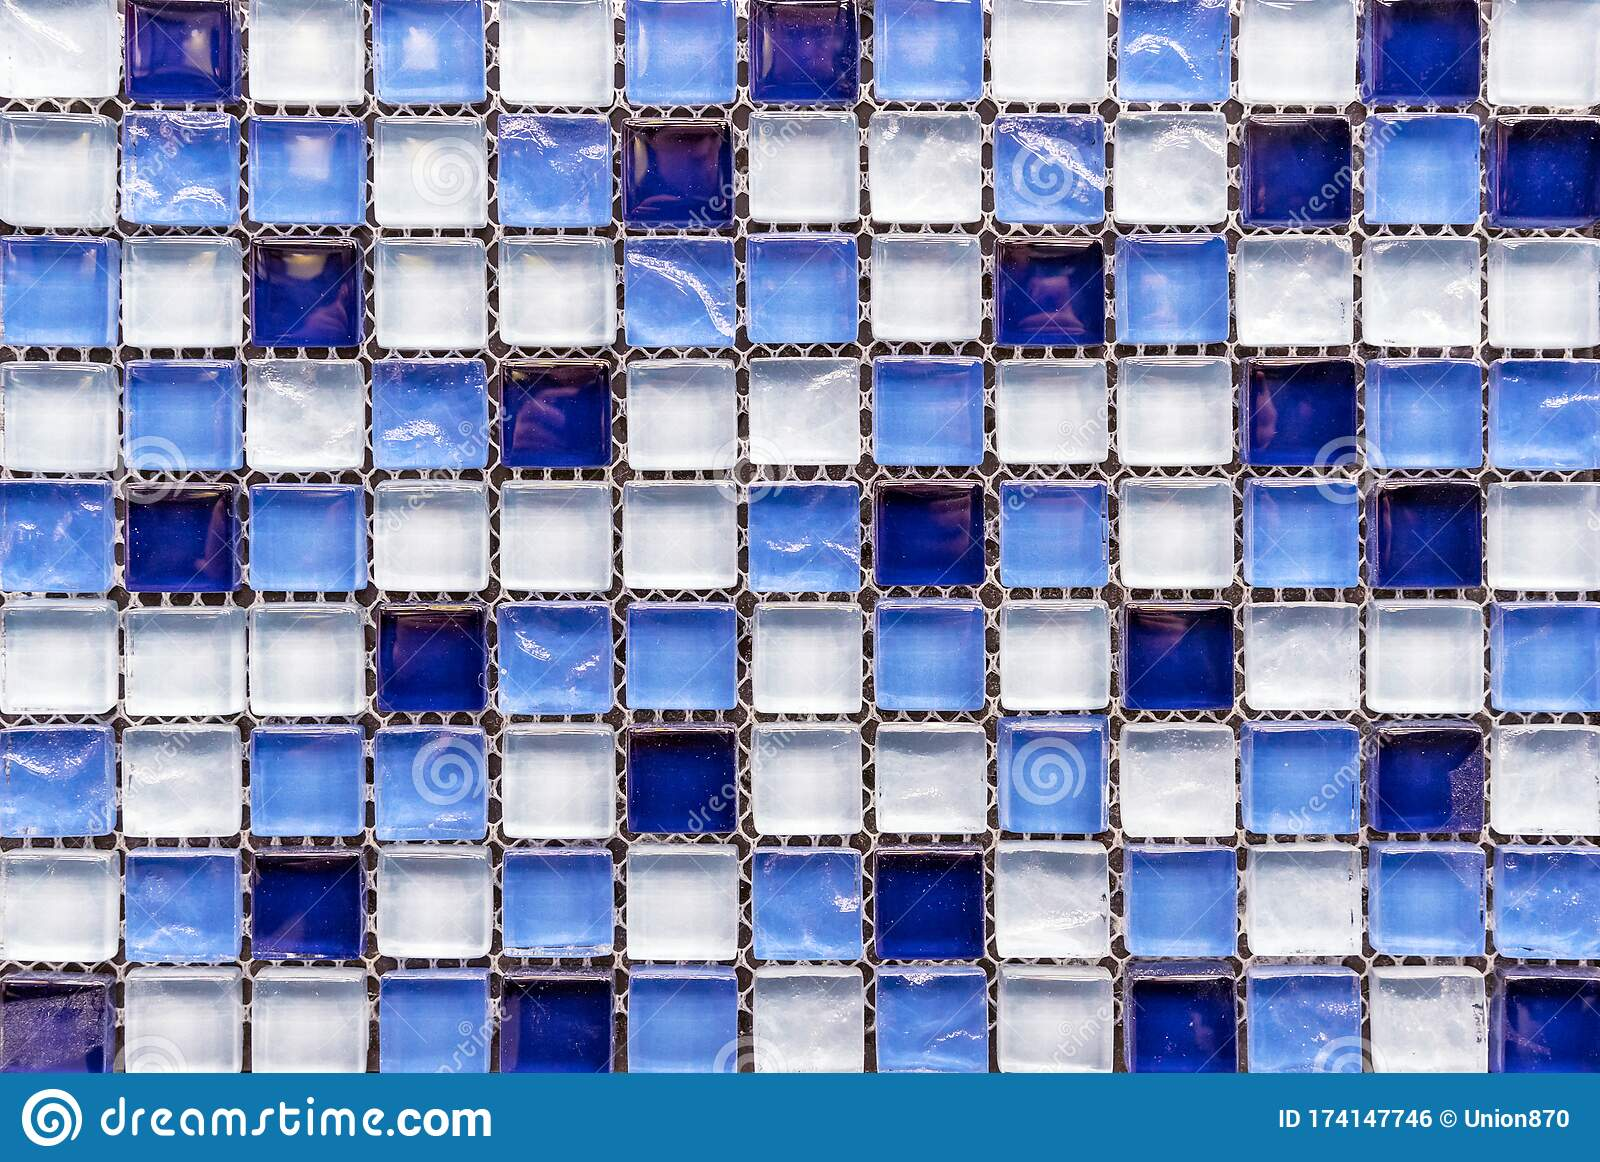 Ceramic Mosaic Tiles With Blue And White Squares To Decorate The Kitchen Bathroom Or Pool Stock Photo Image Of Texture Blue 174147746